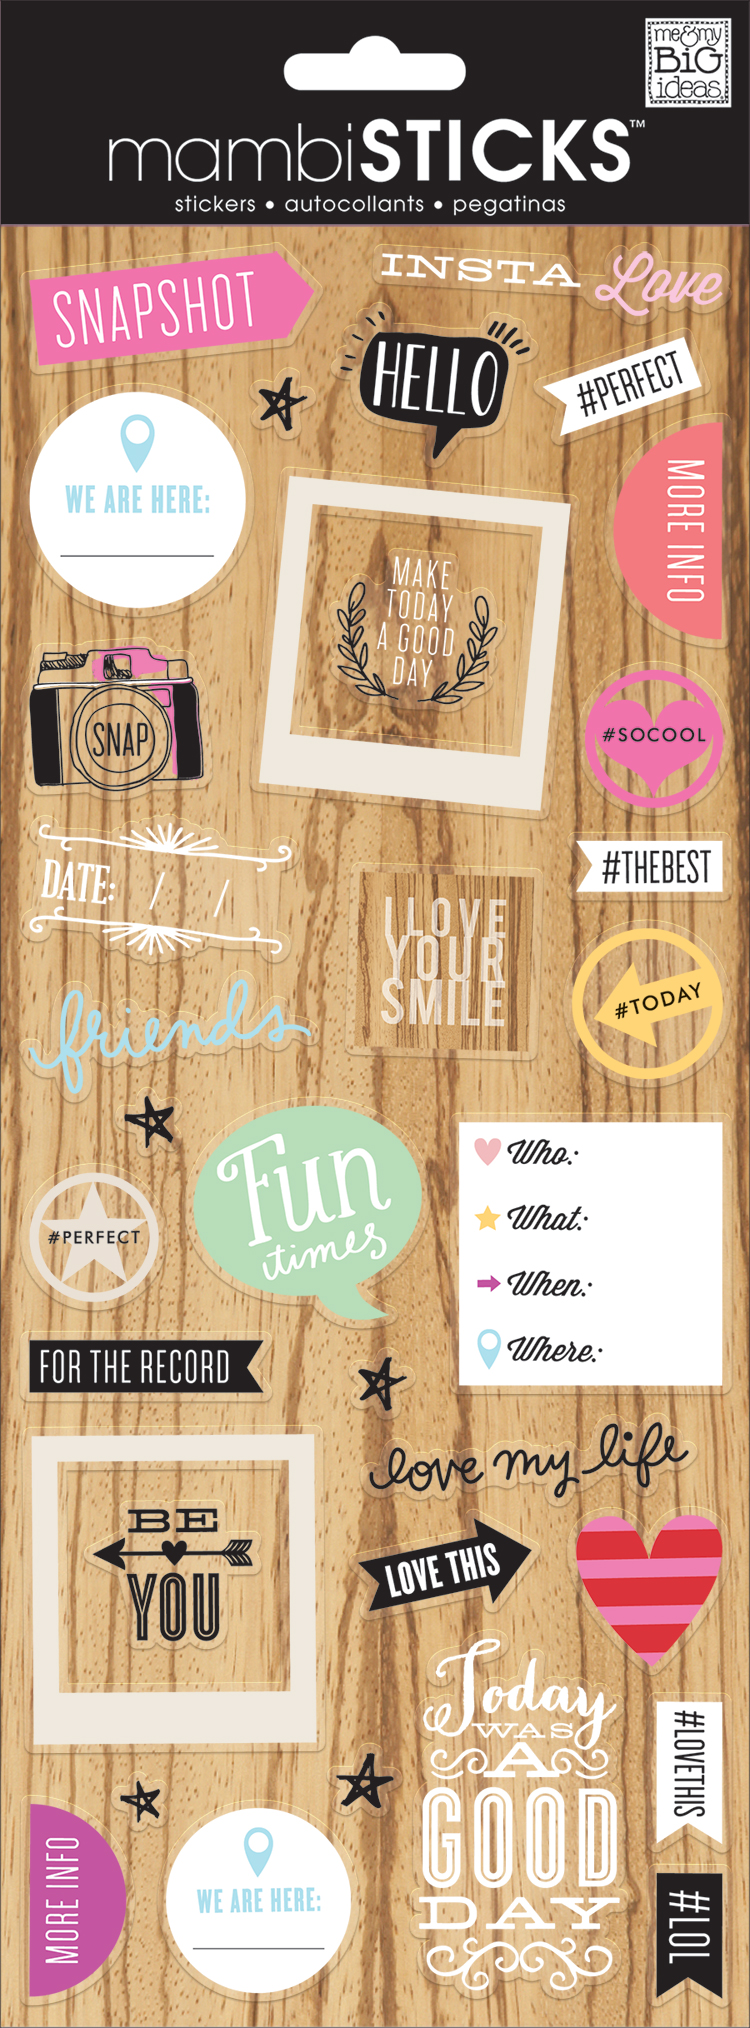 'Insta Love' mambiSTICKS stickers | me & my BIG ideas.jpg